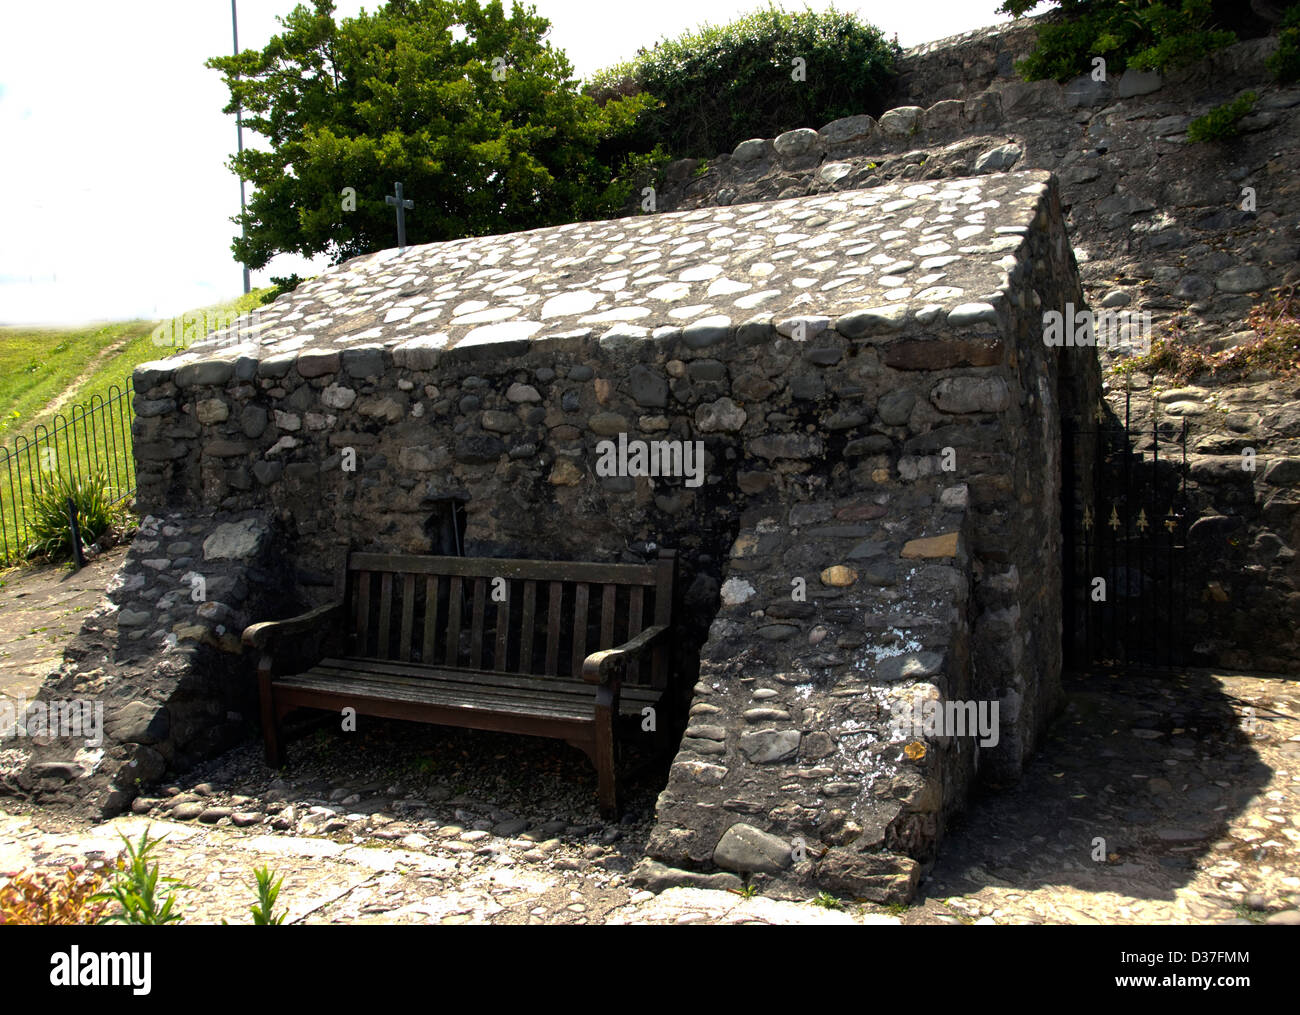 WALES; CONWY; RHOS-ON-SEA EUCHARIST CHURCH OF ST. TRILLO - Stock Image